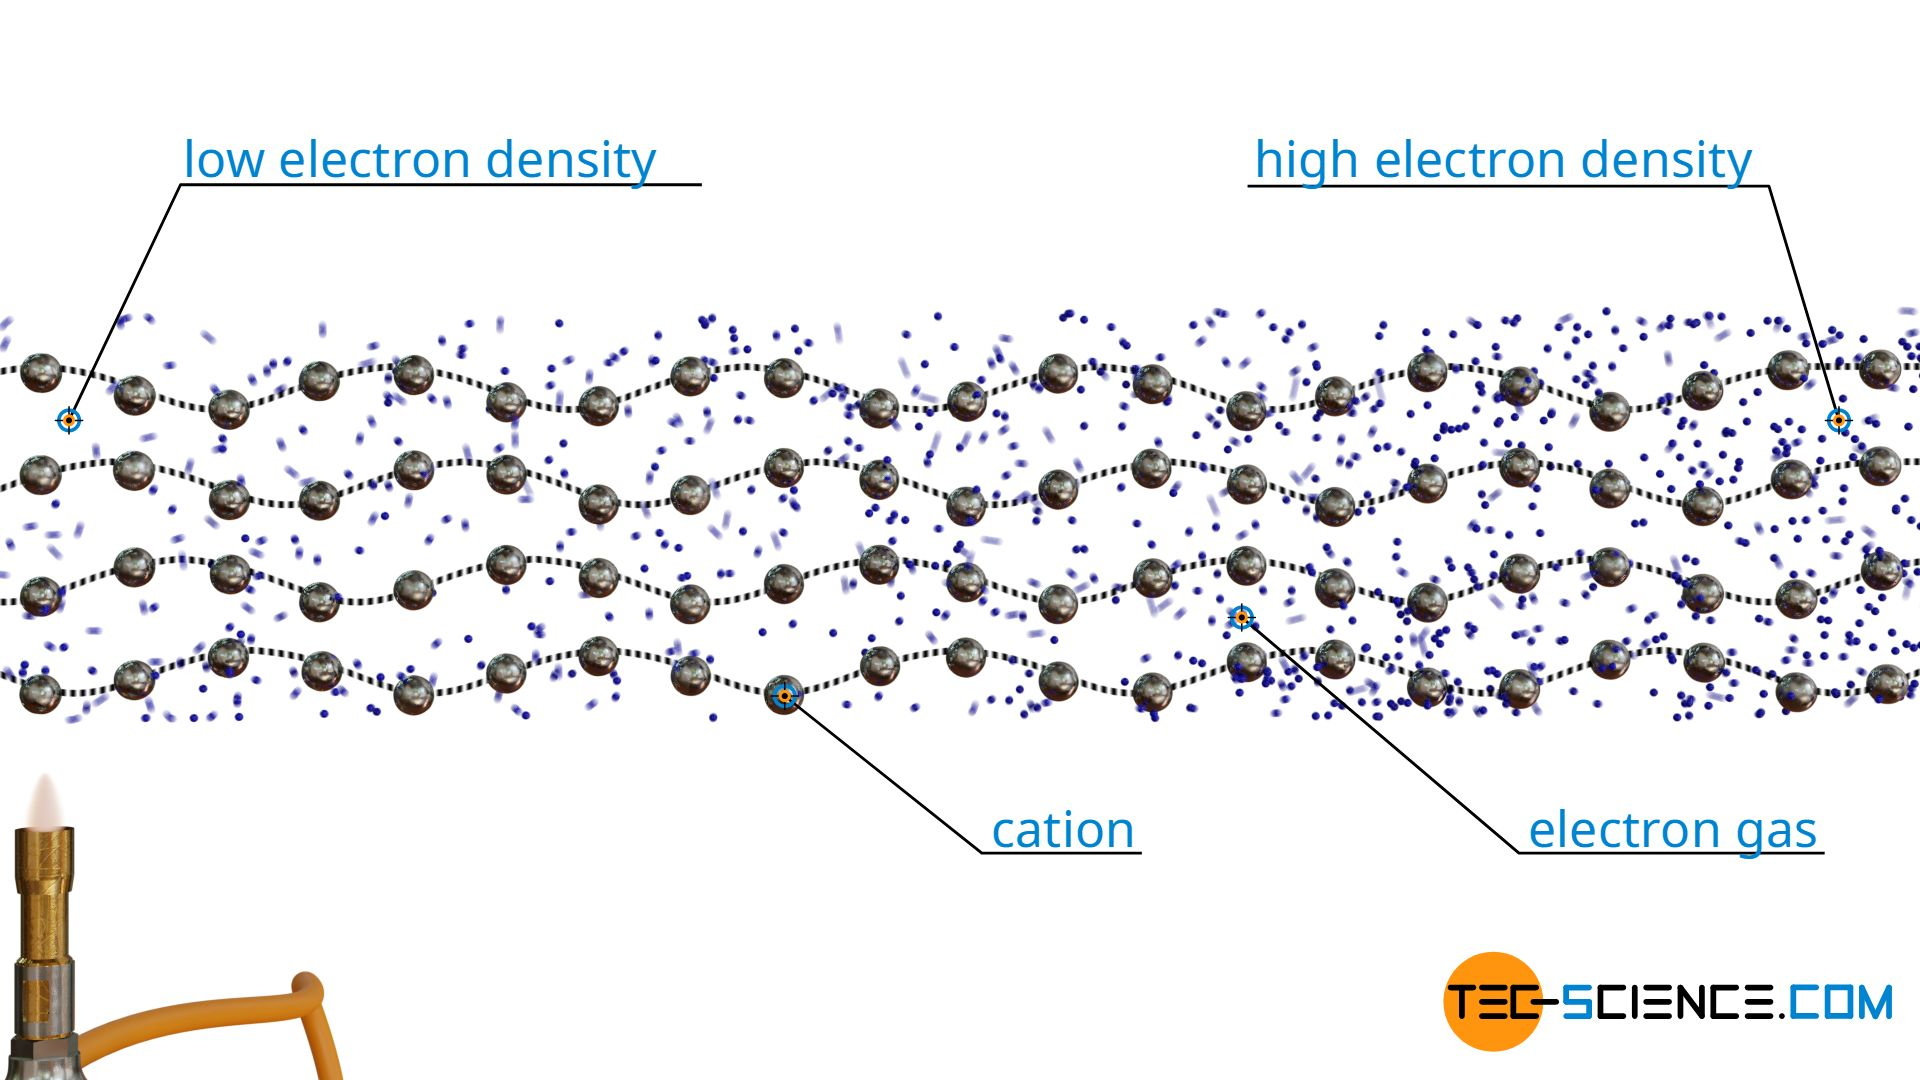 Thermal conduction of metals by lattice oscillations (phonons) and electron collisions